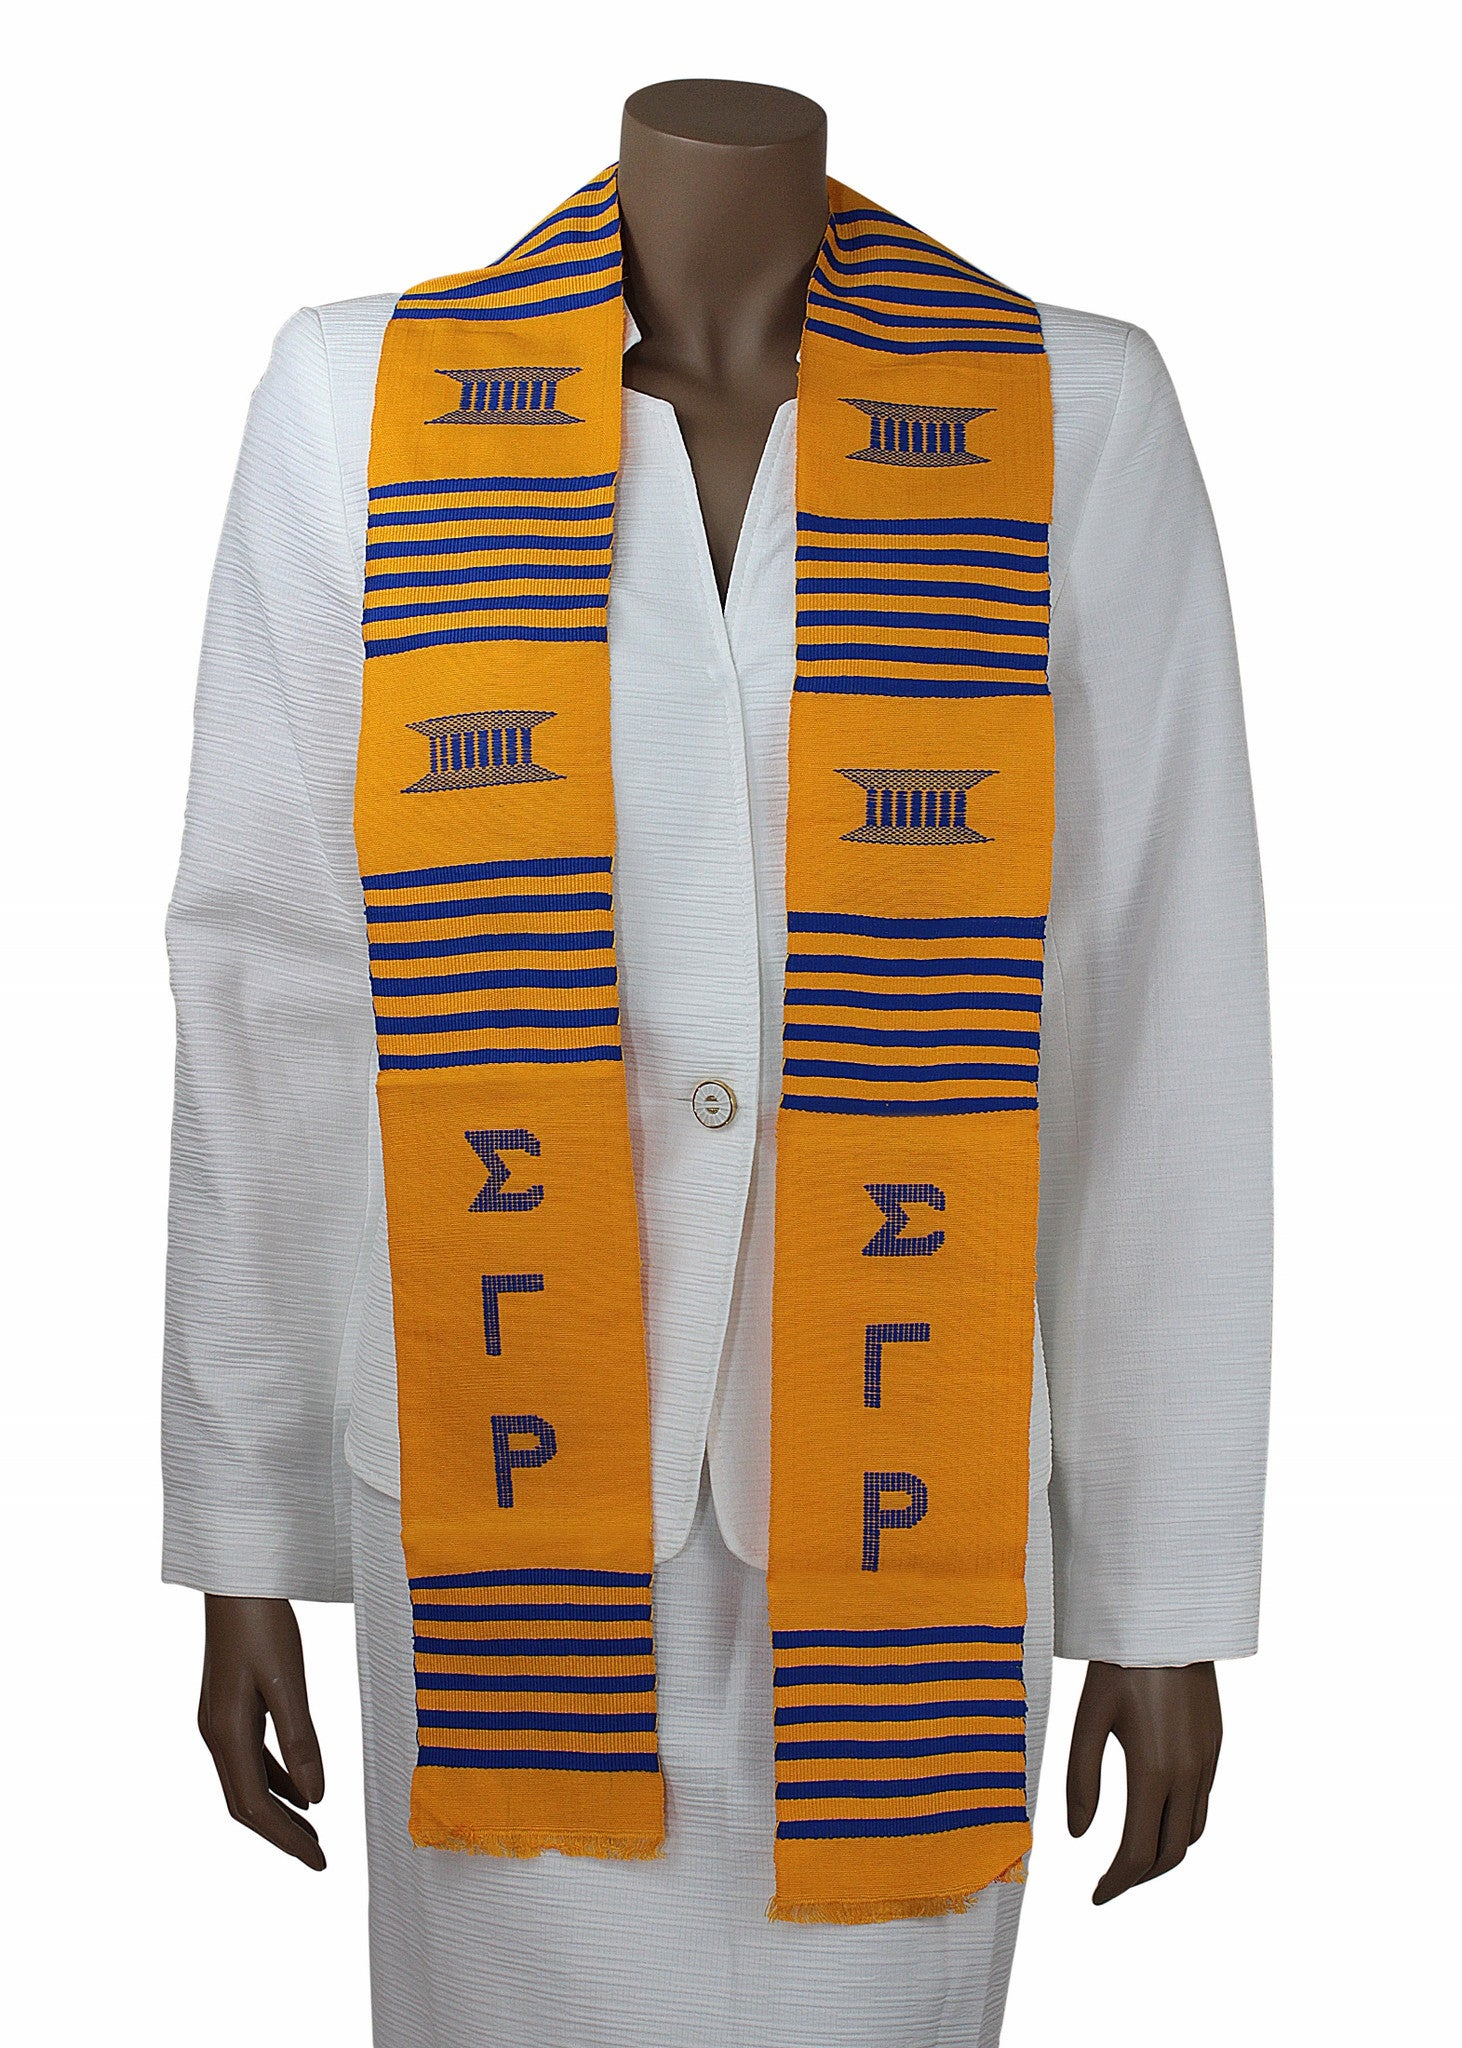 Sigma Gamma Rho Gold Kente Stole by Gold Coast Africa